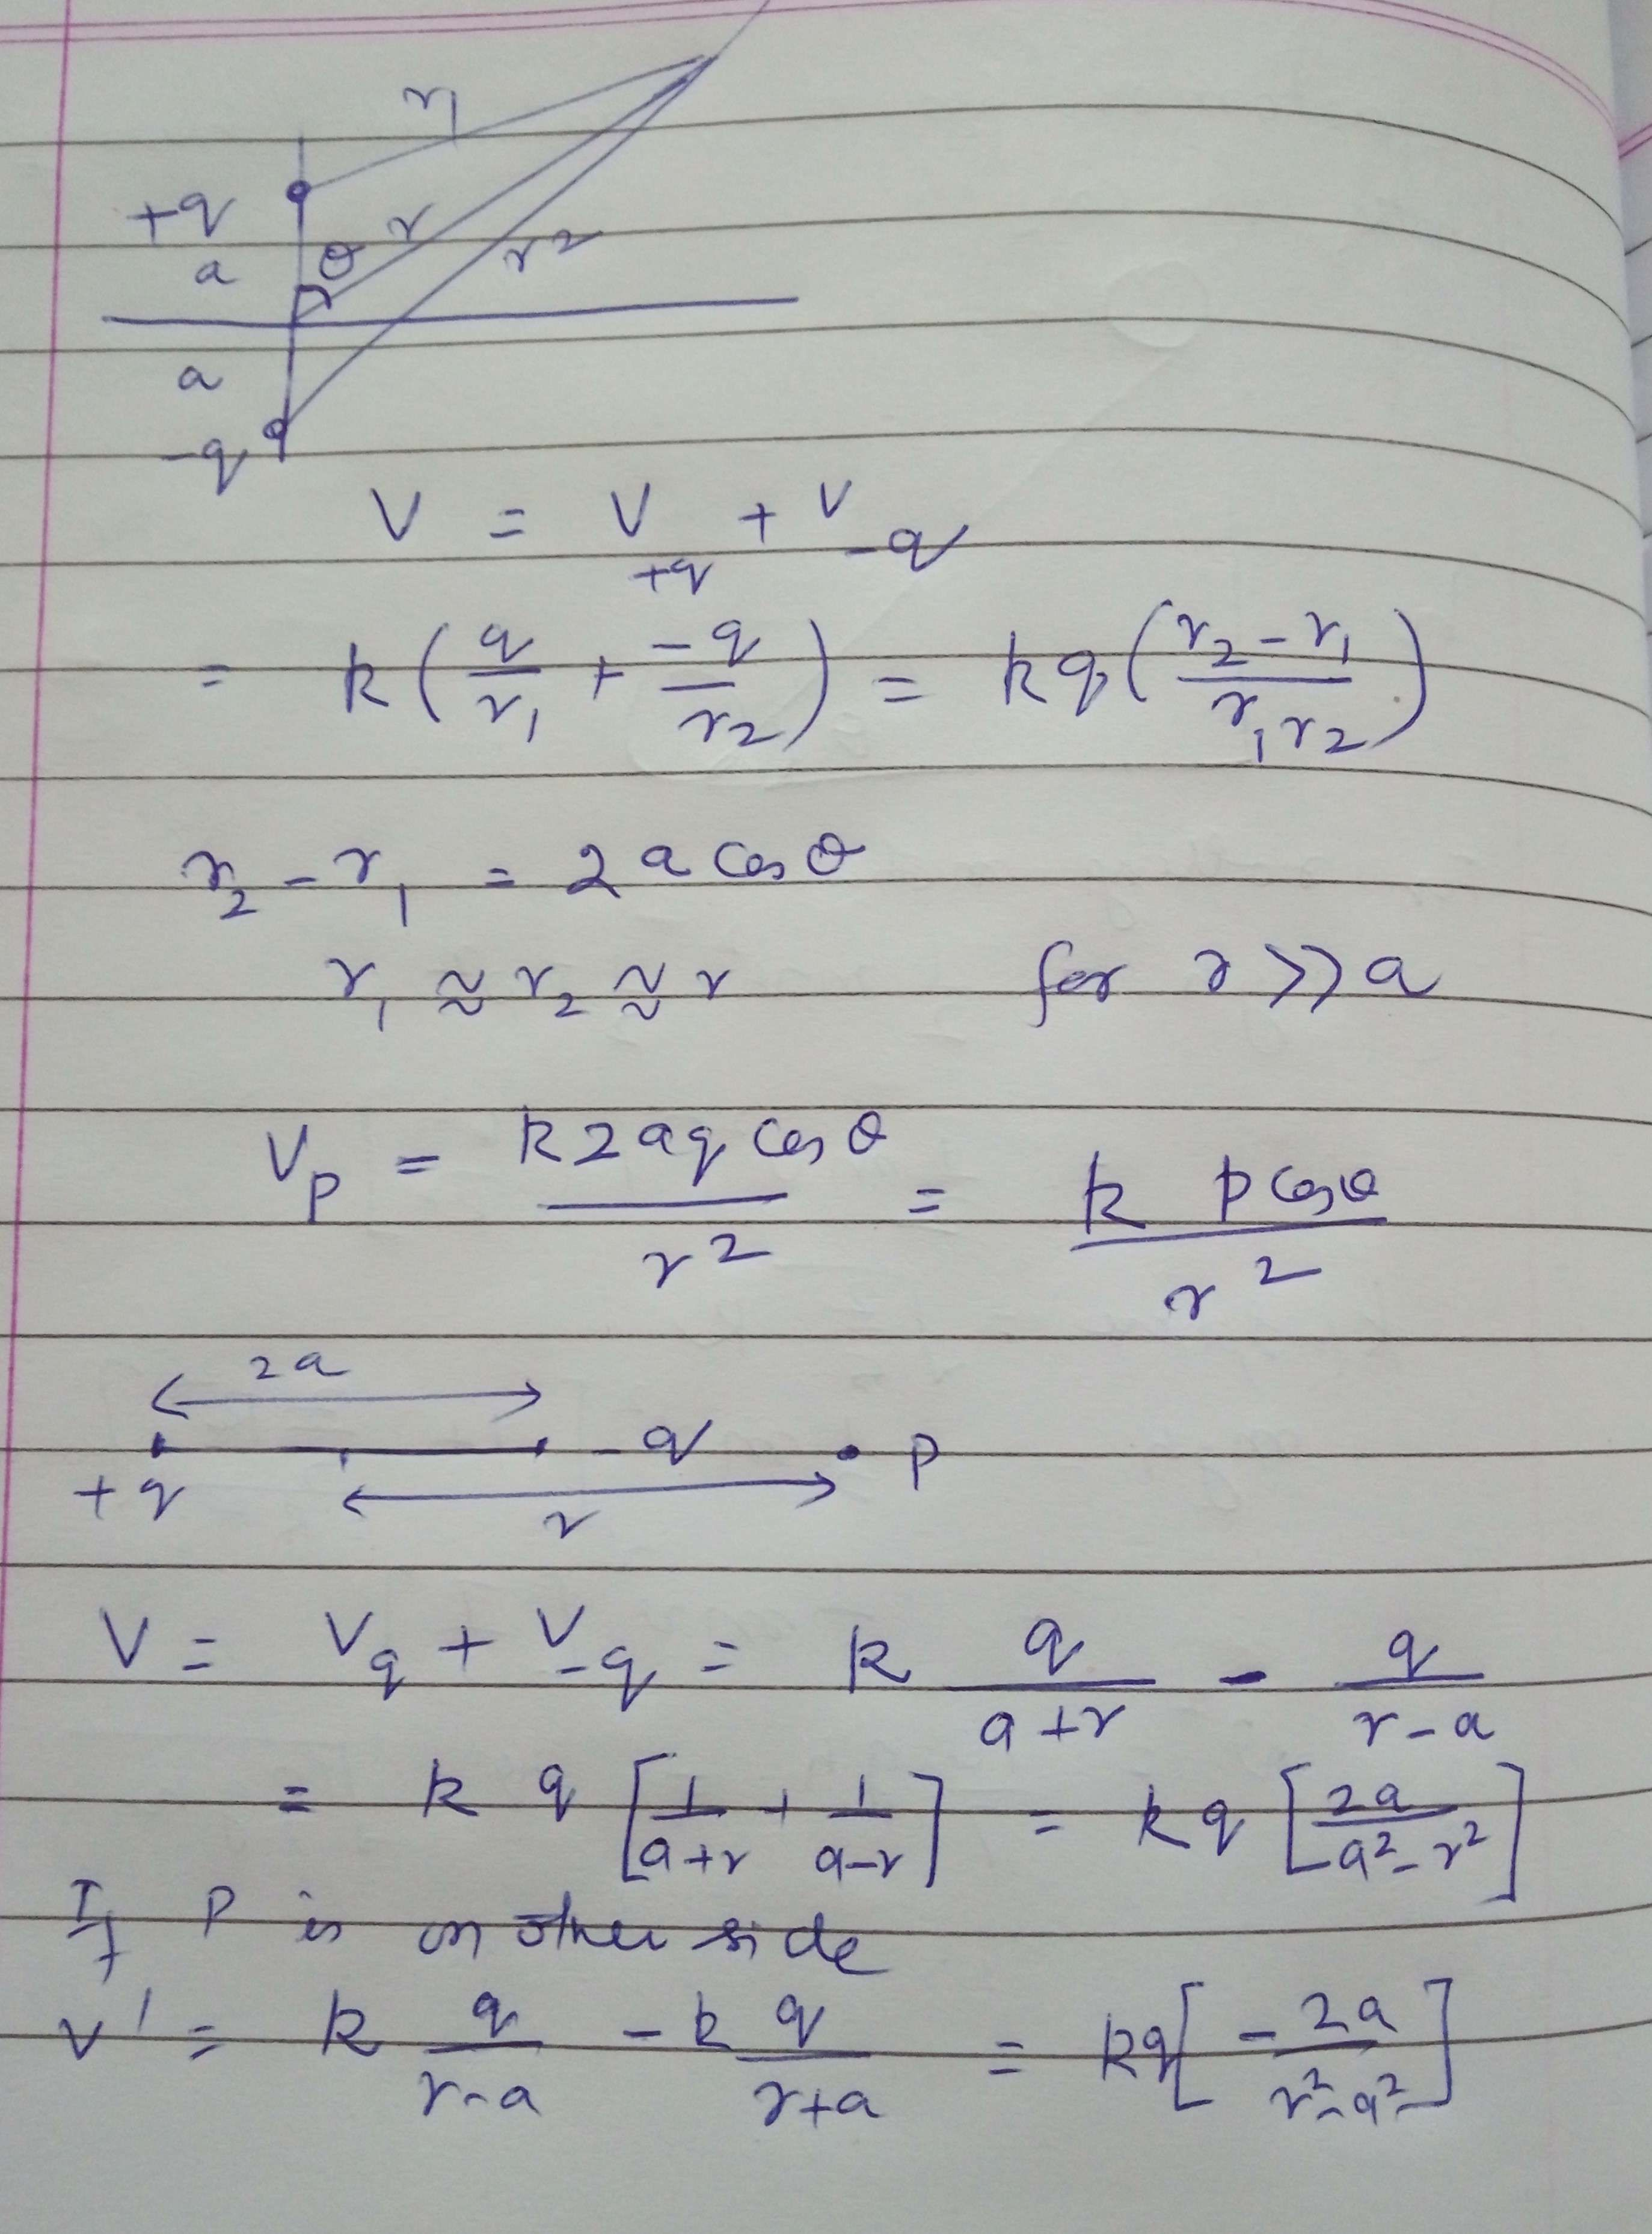 Derive an expression for potential due to an electric dipole at a